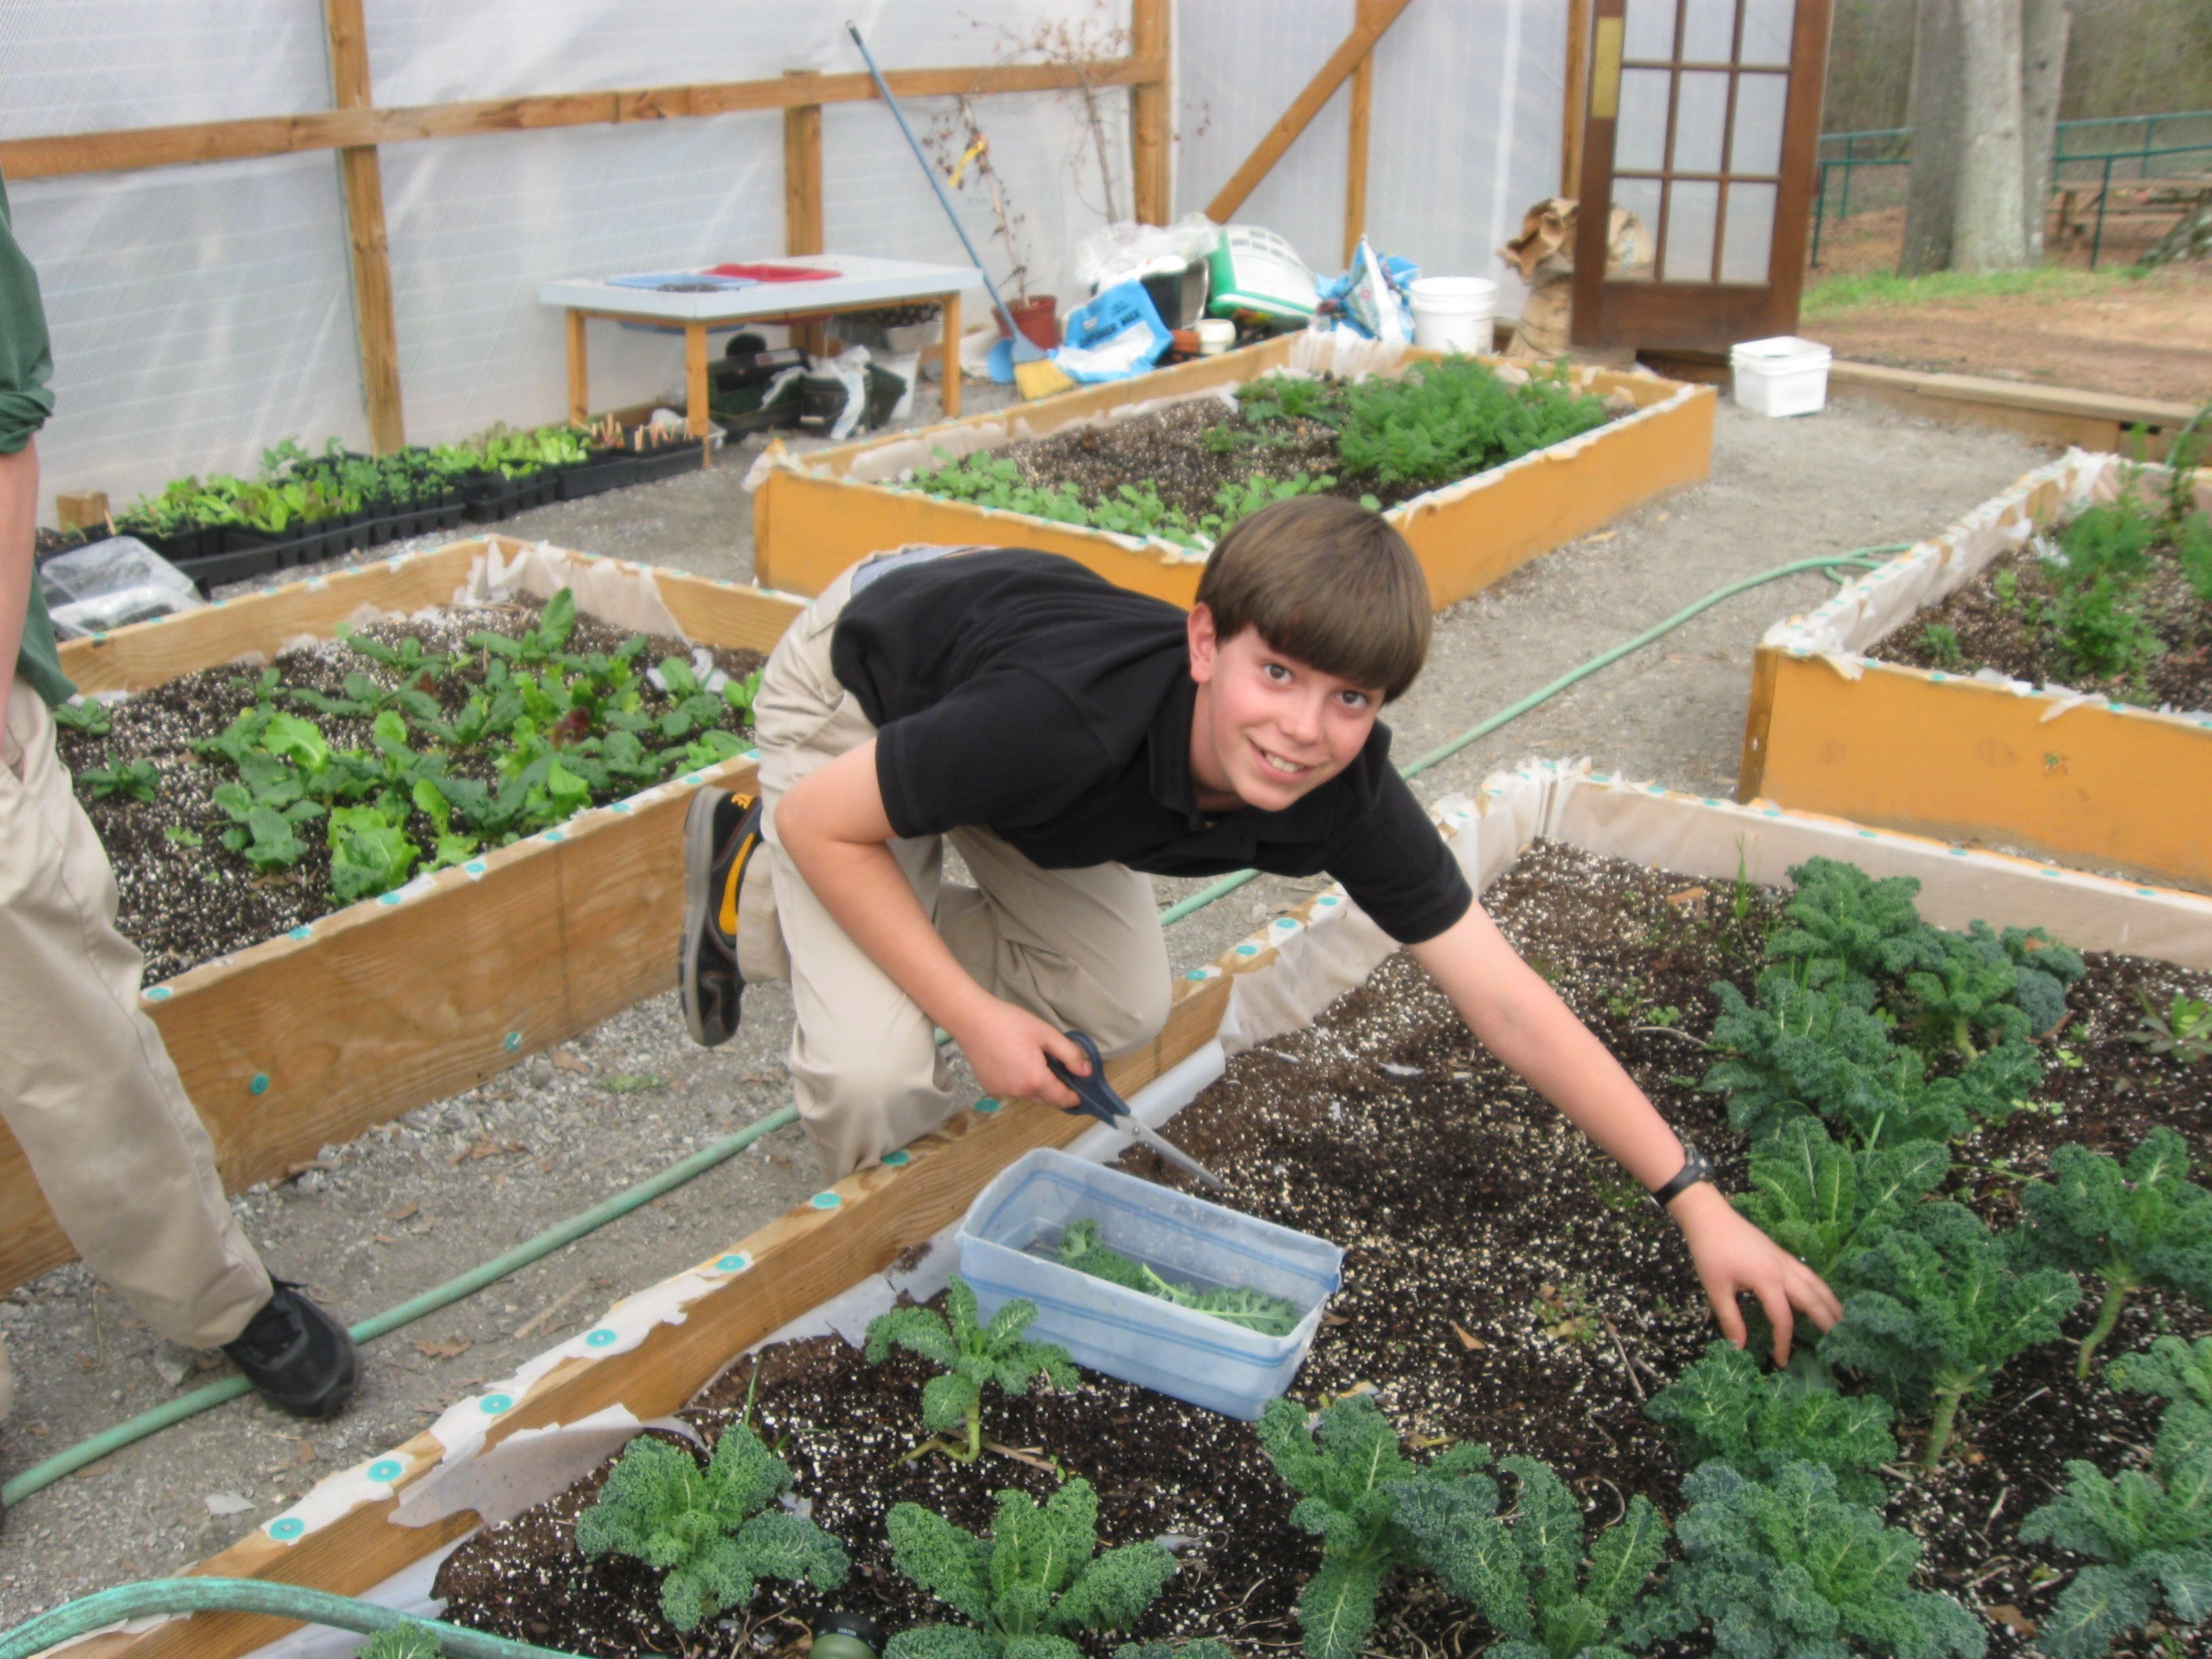 3a8ecc4df811b241b53f92e6726a6b92 - Why Gardening Should Be Taught In Schools